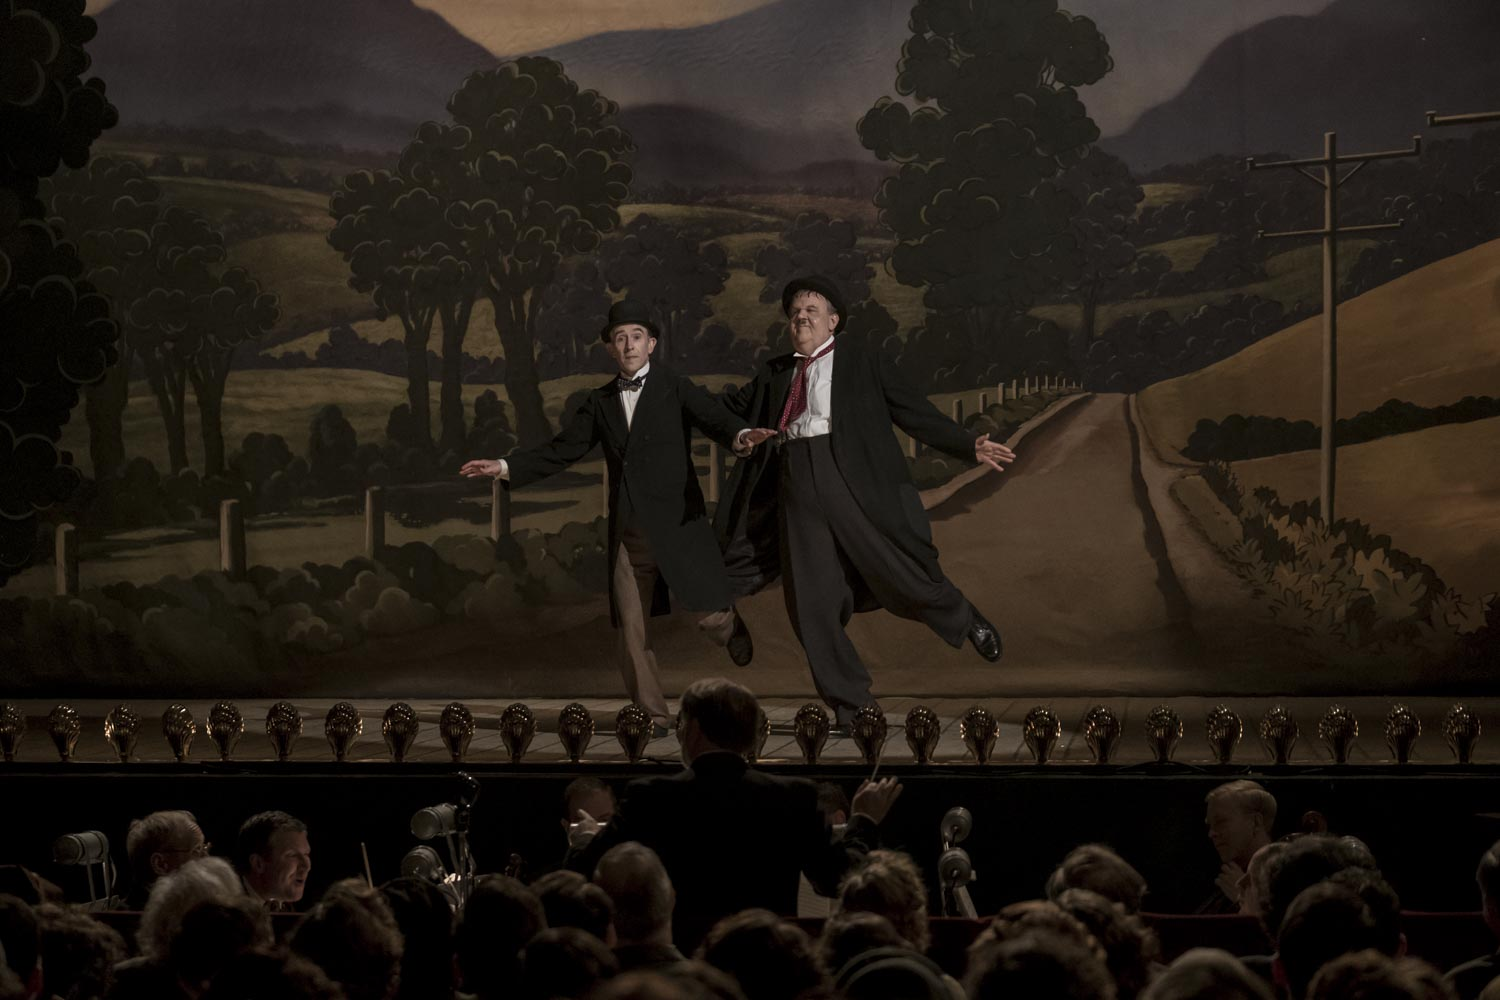 Laurel and Hardy characters on stage